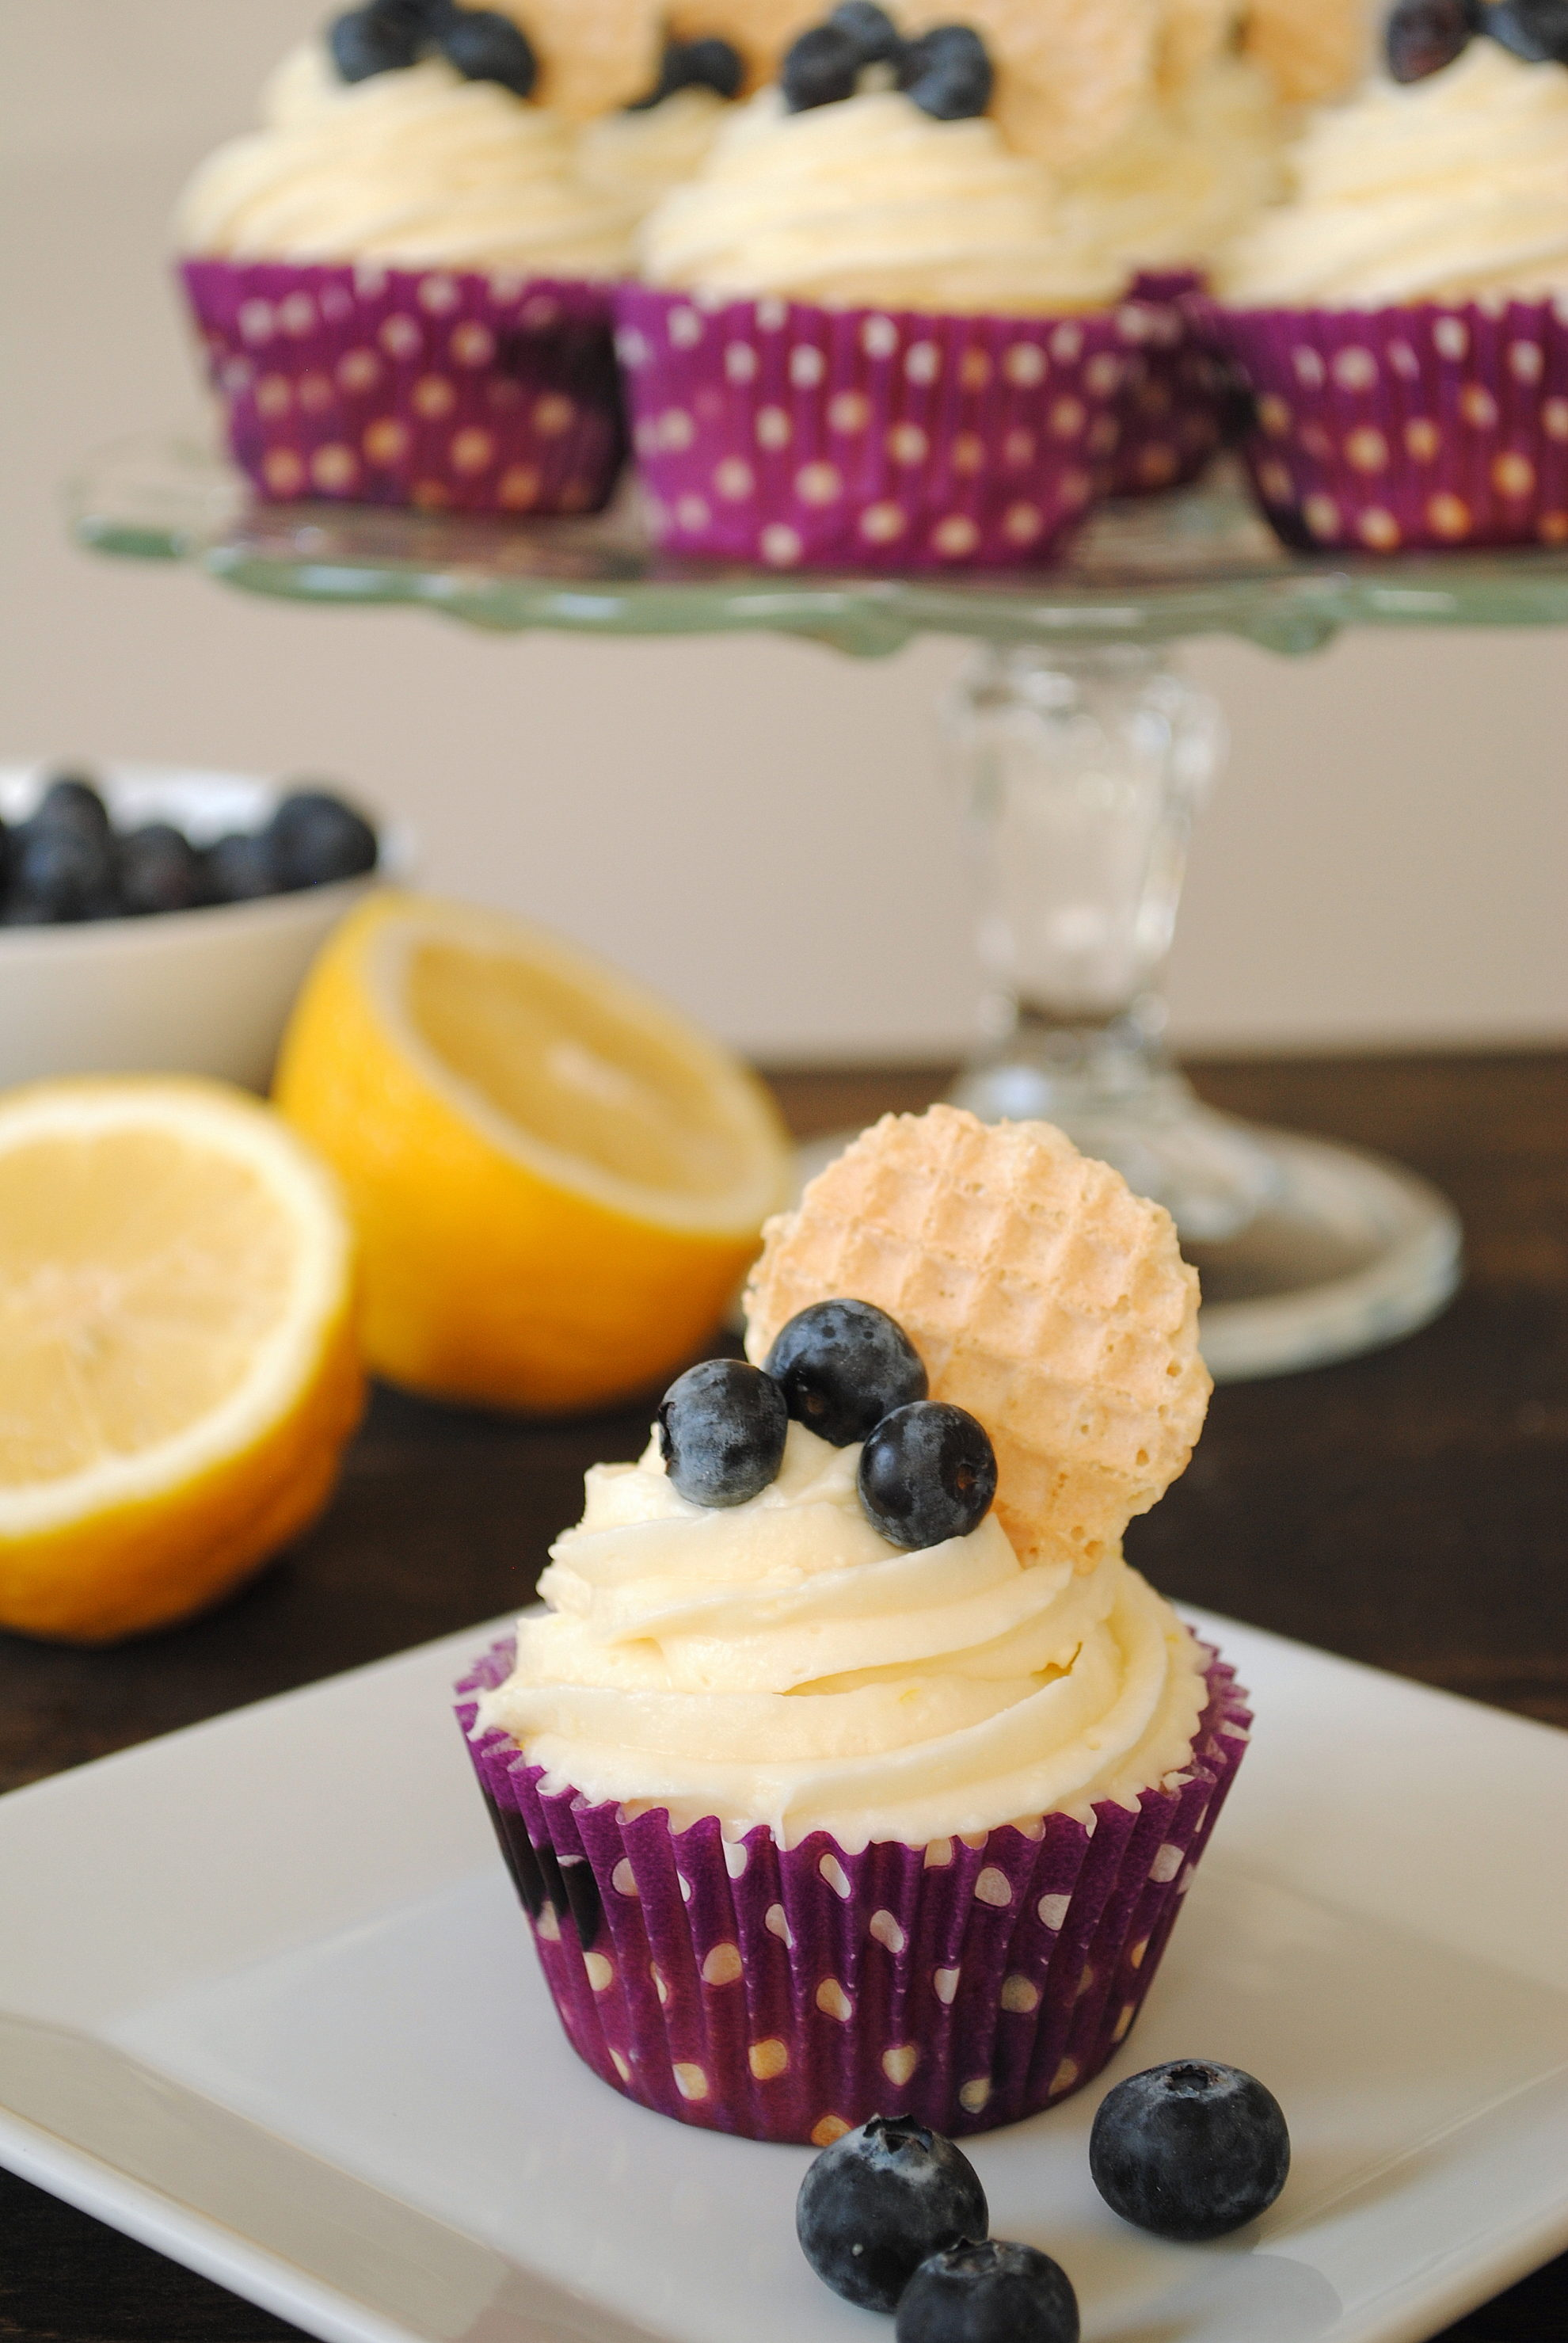 Blueberry Cupcakes with Lemon Frosting